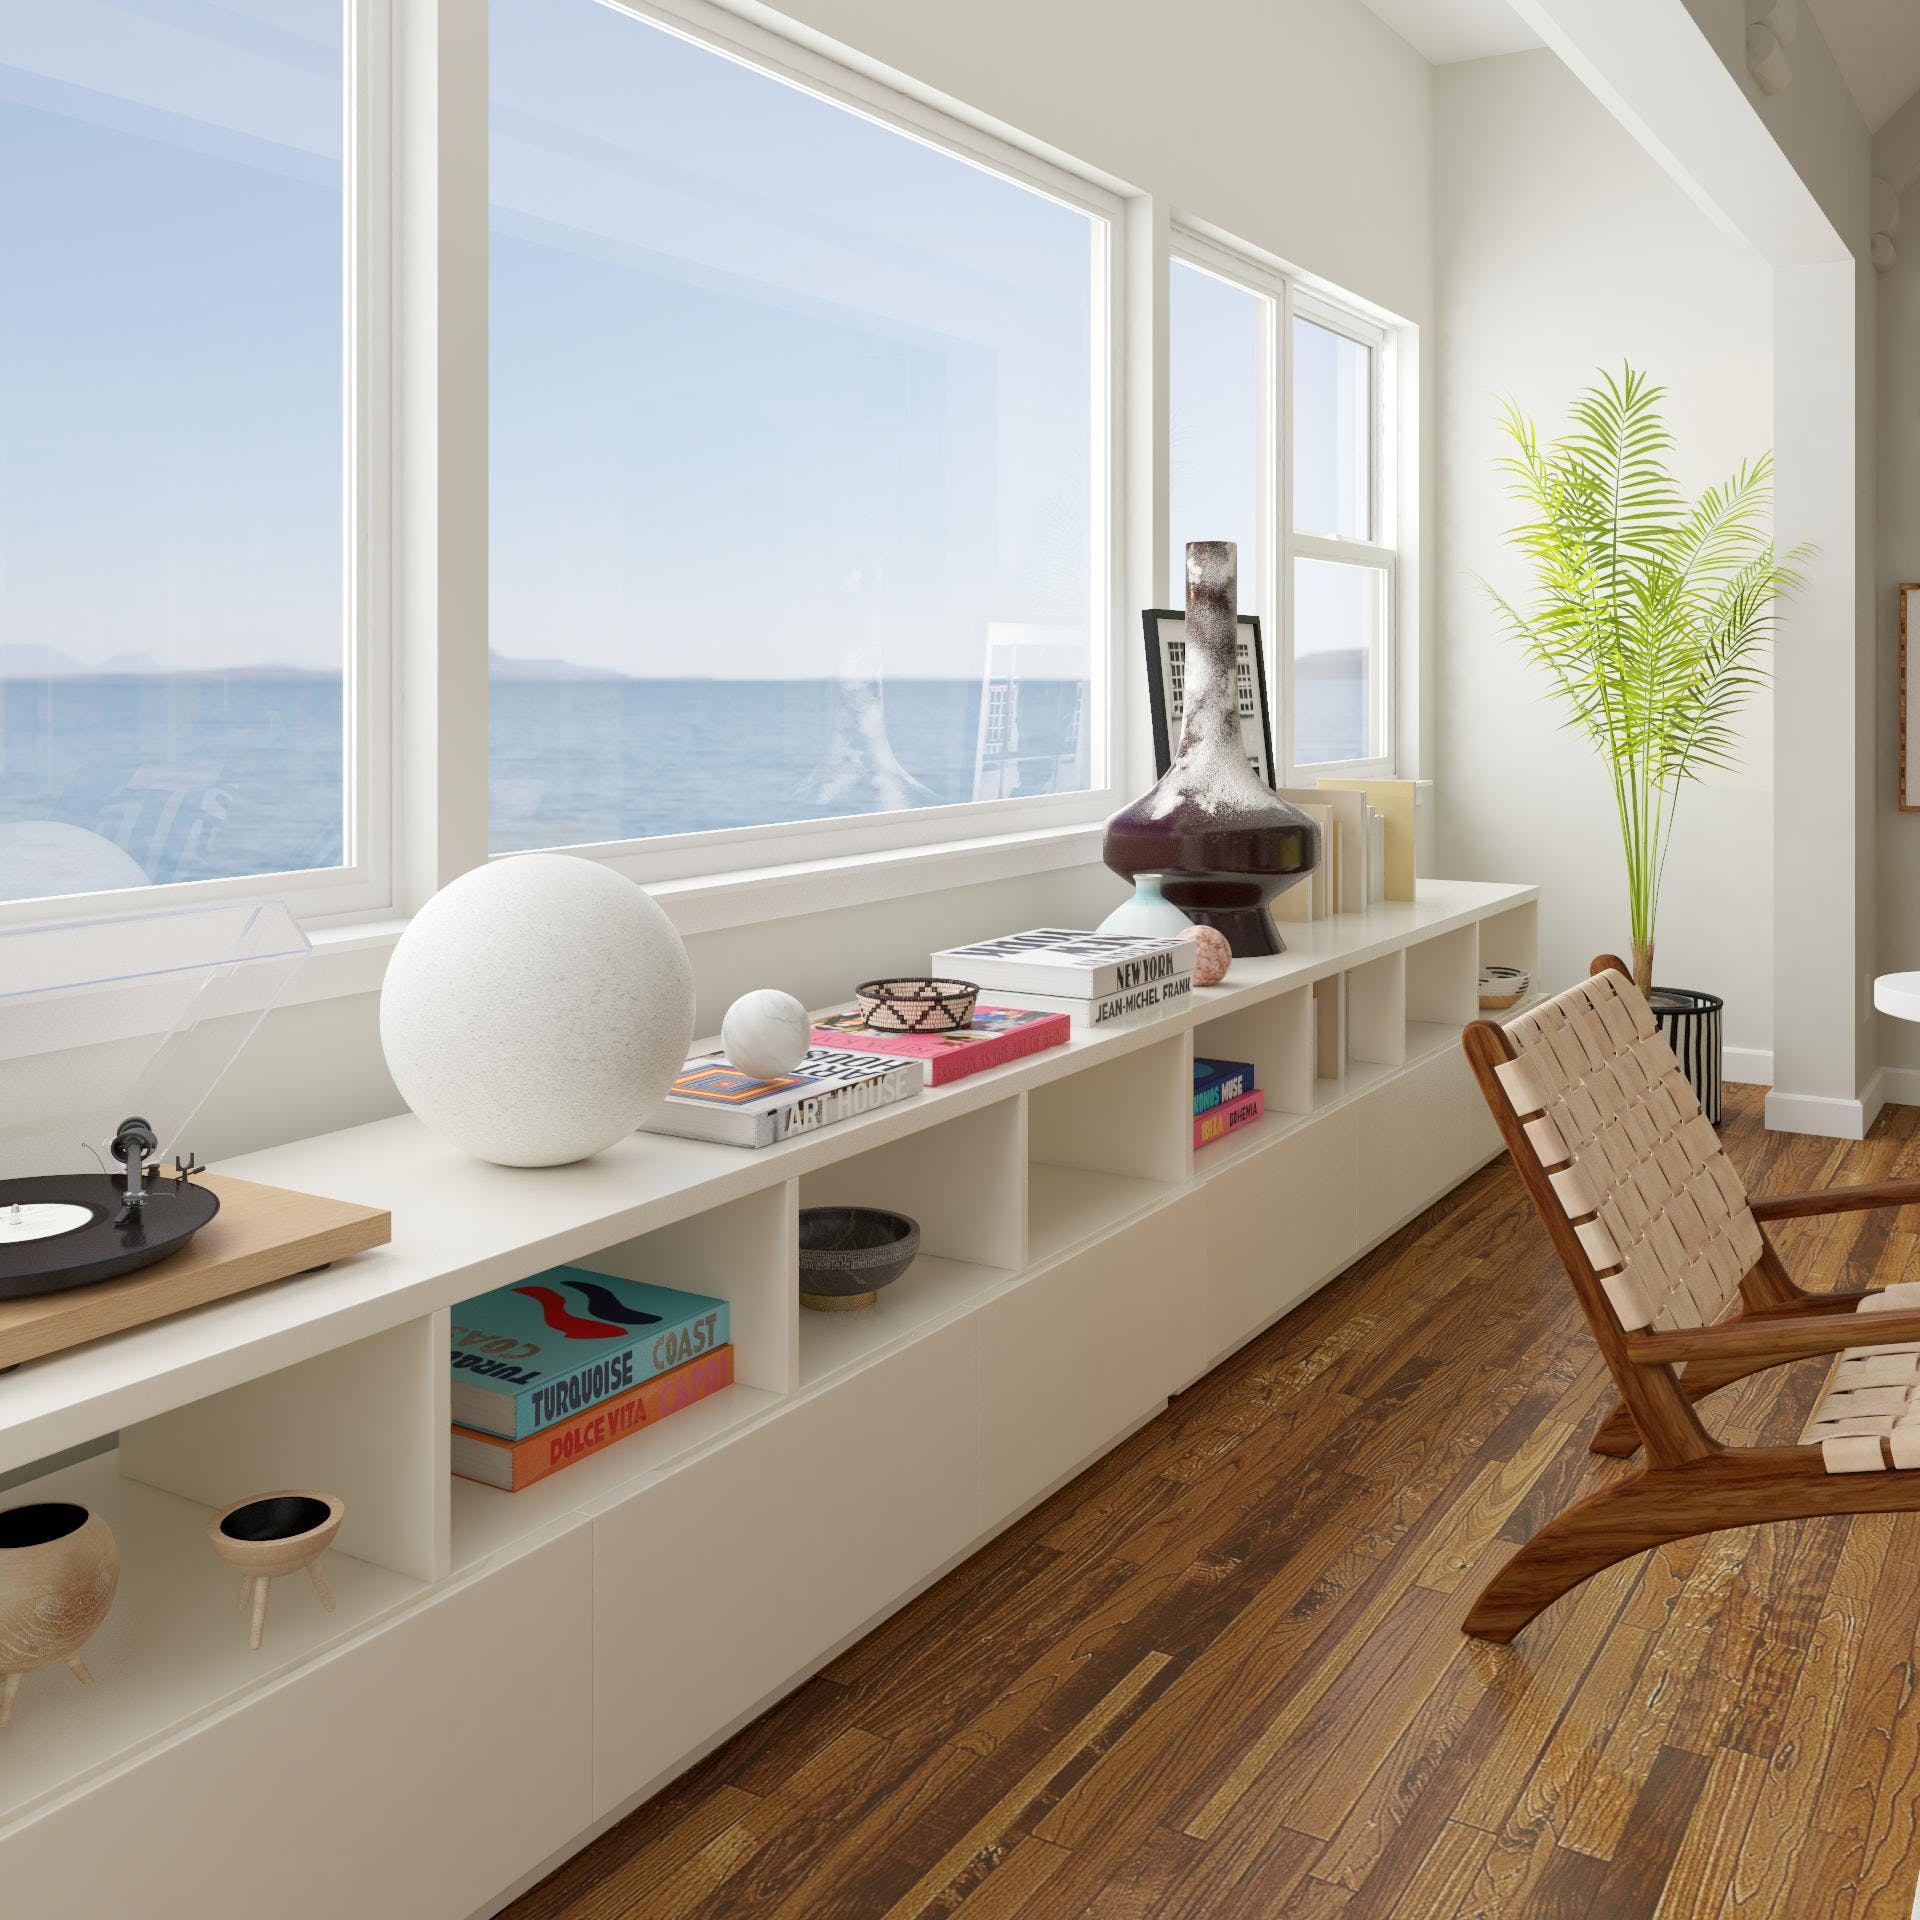 Seaside View with Bold Contemporary Styling